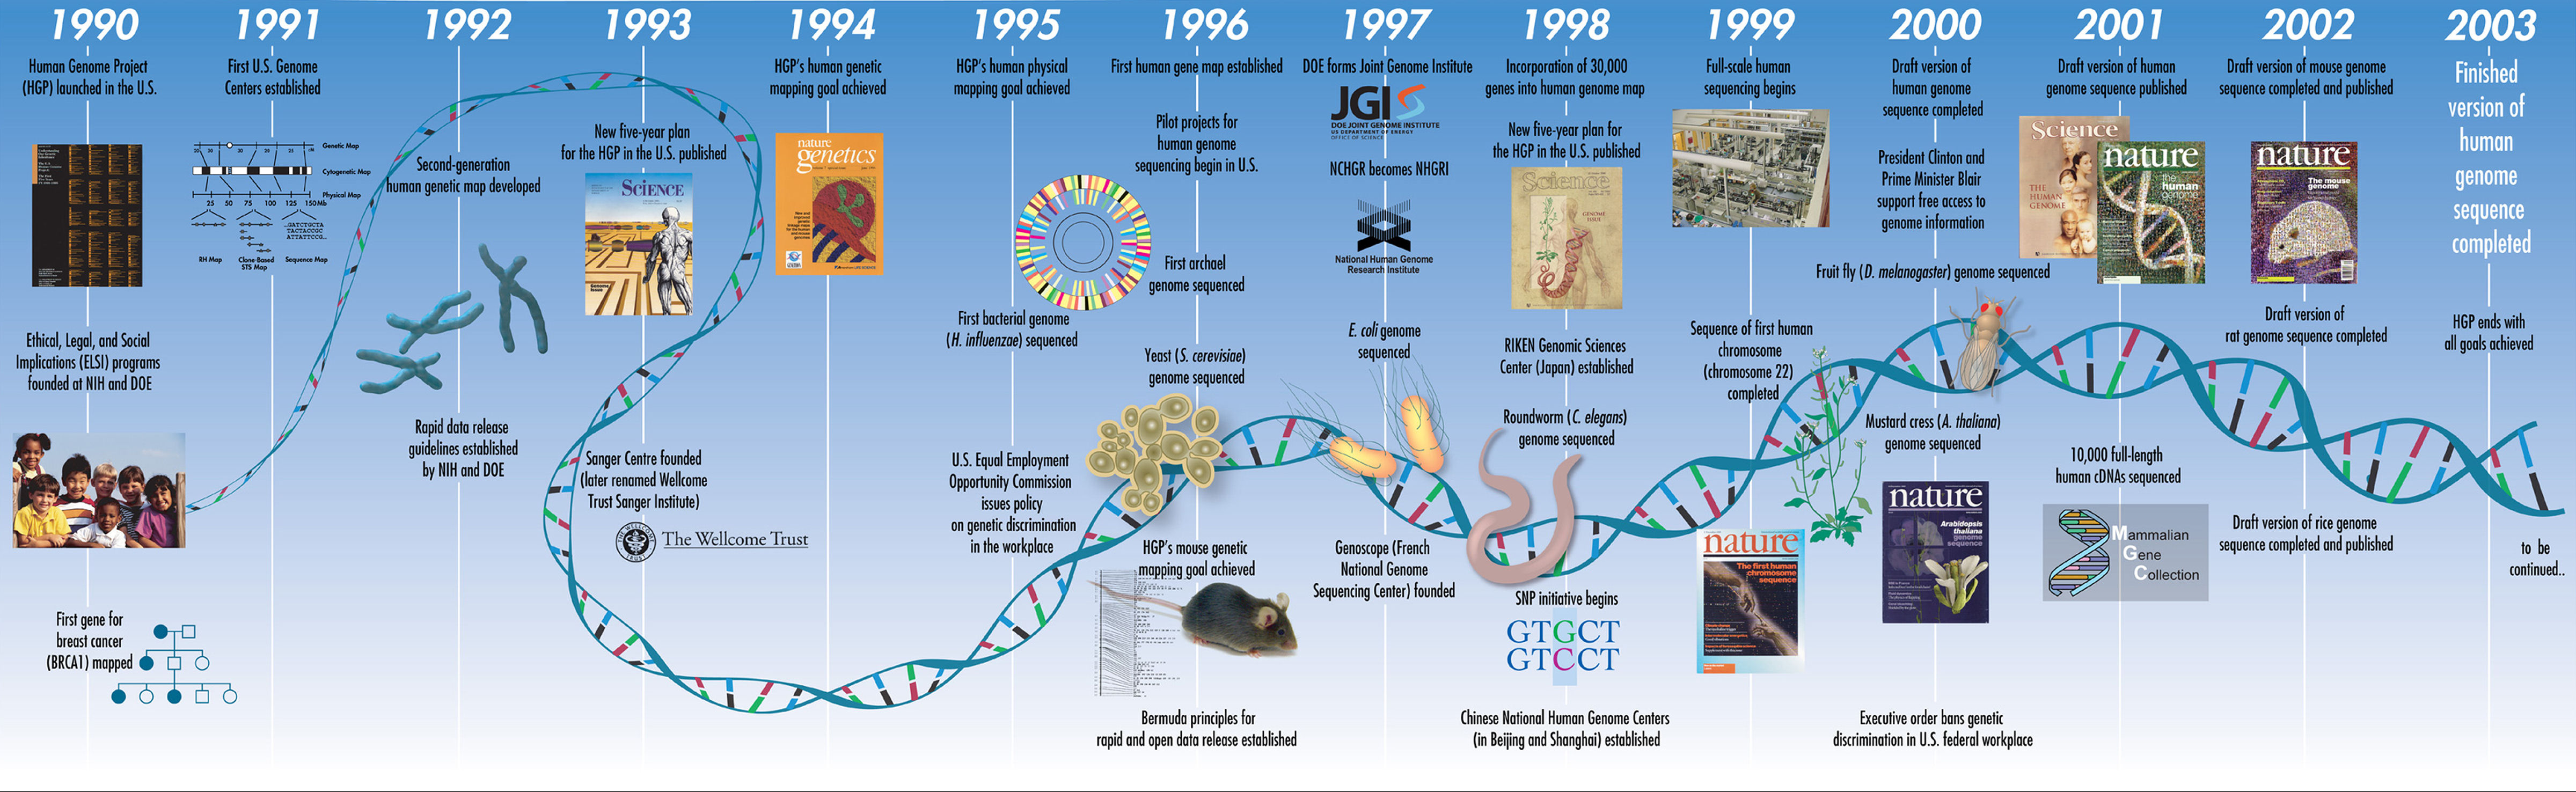 a history of the discovery of genetic engineering With the discovery of recombinant dna by cohen and boyer in 1973, the idea that genetic engineering would have major human and societal consequences was born in july 1974, a group of eminent molecular biologists headed by paul berg wrote to science suggesting that the consequences of this work were so potentially destructive that there should.